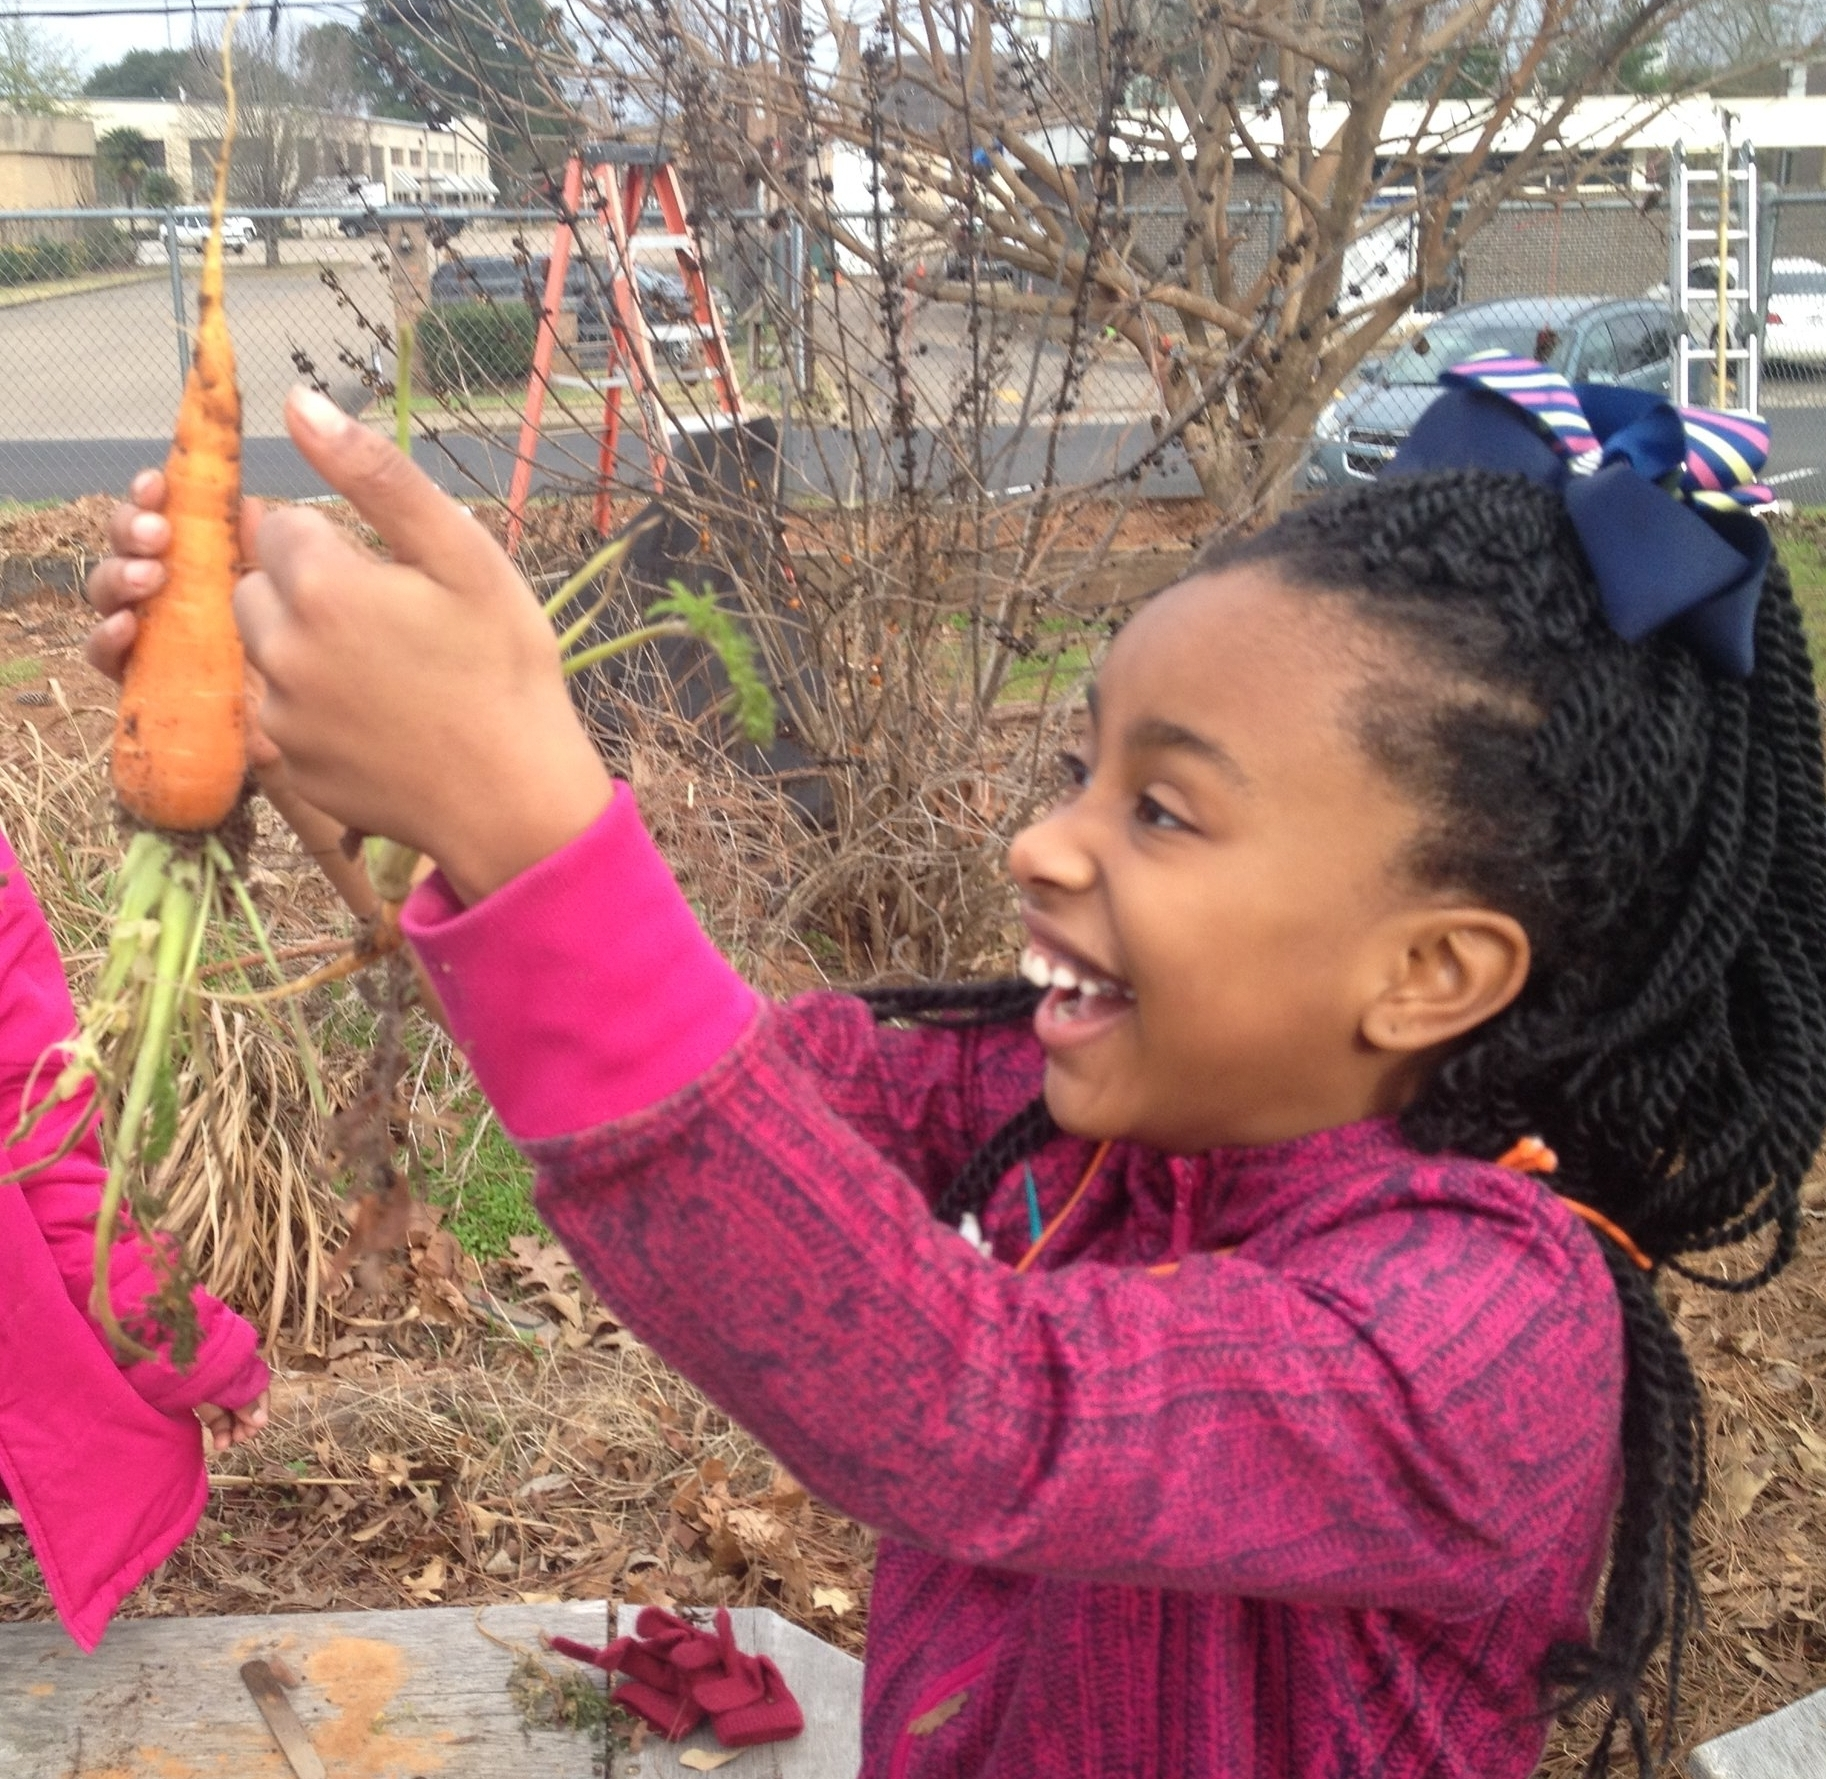 3rd grade Garden Bud marvels in her first carrot harvest.